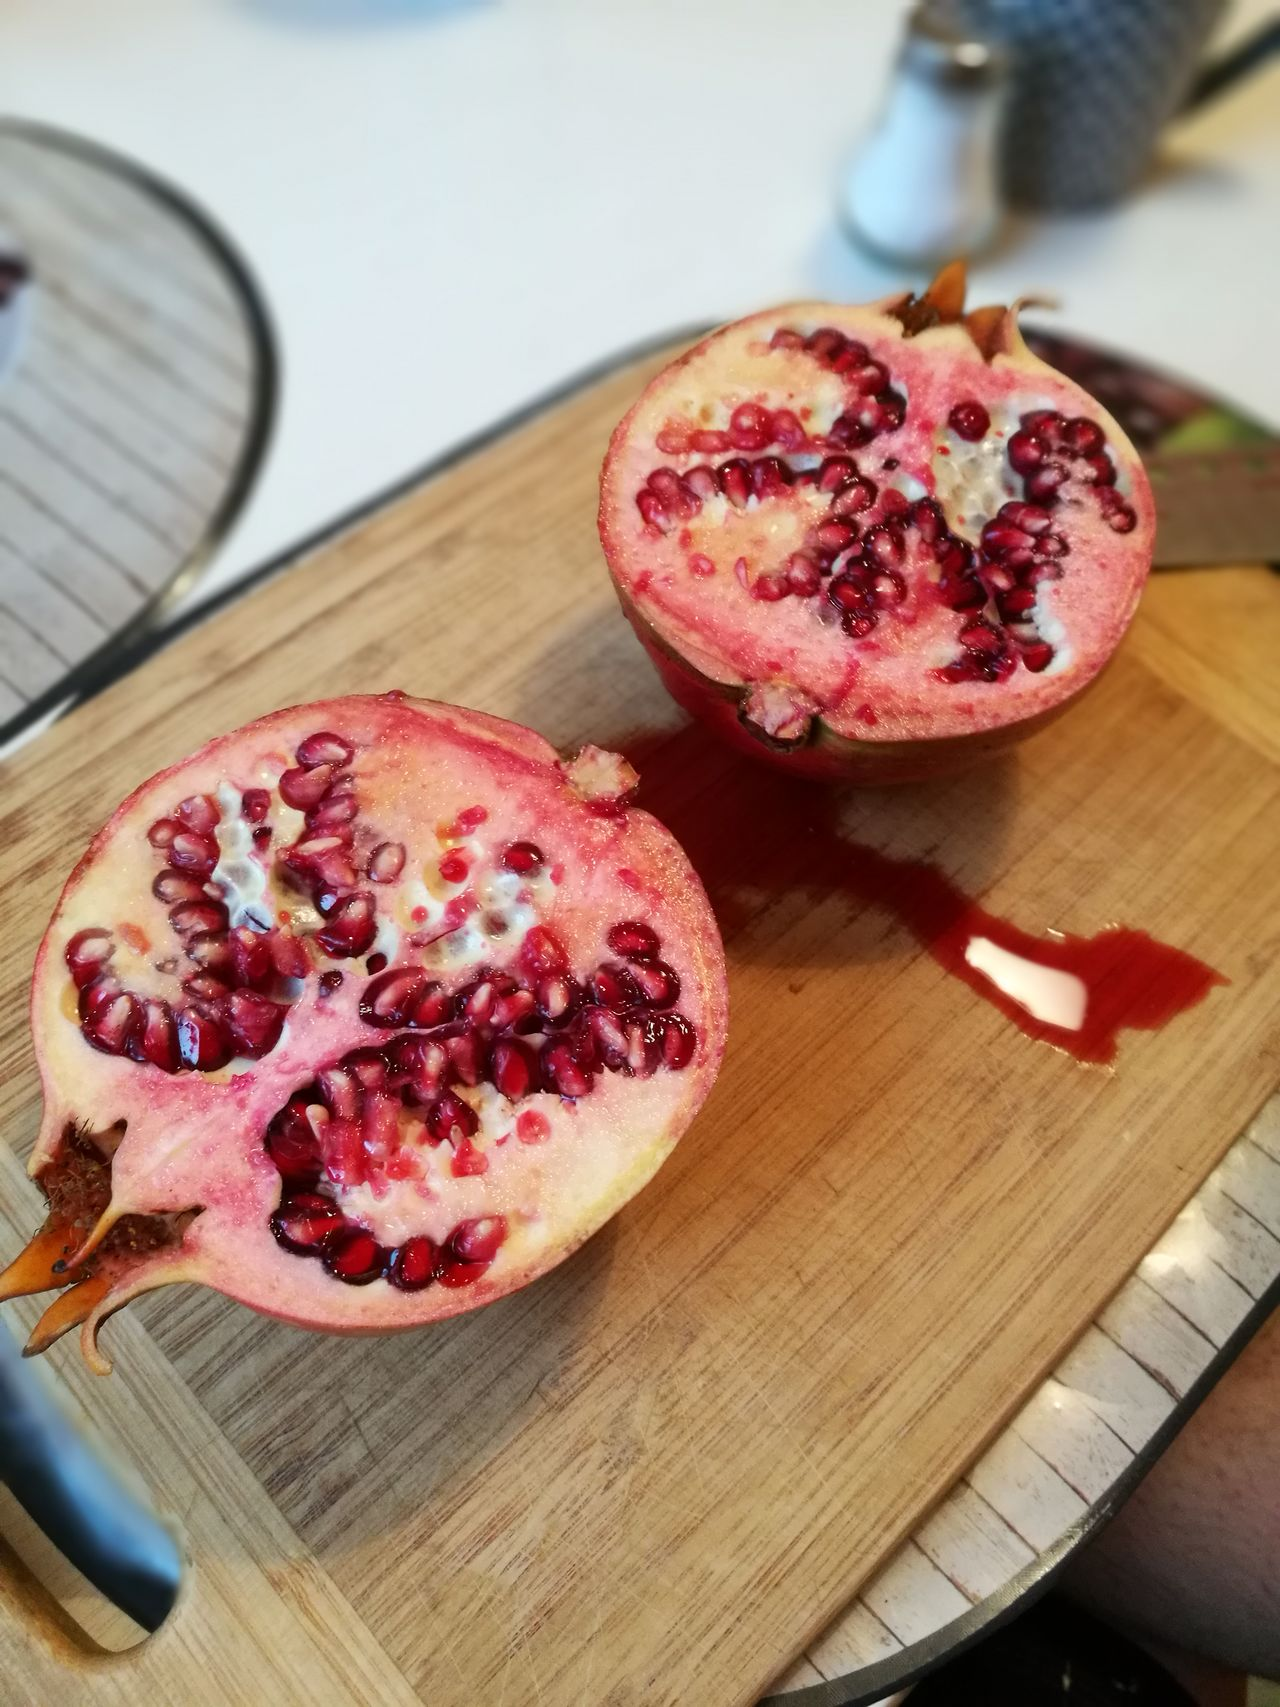 Maracujá Food And Drink Table Fruit Freshness Healthy Eating Indoors  Pomegranate Seed High Angle View Wood - Material Pomegranate Seed No People Food Day Close-up